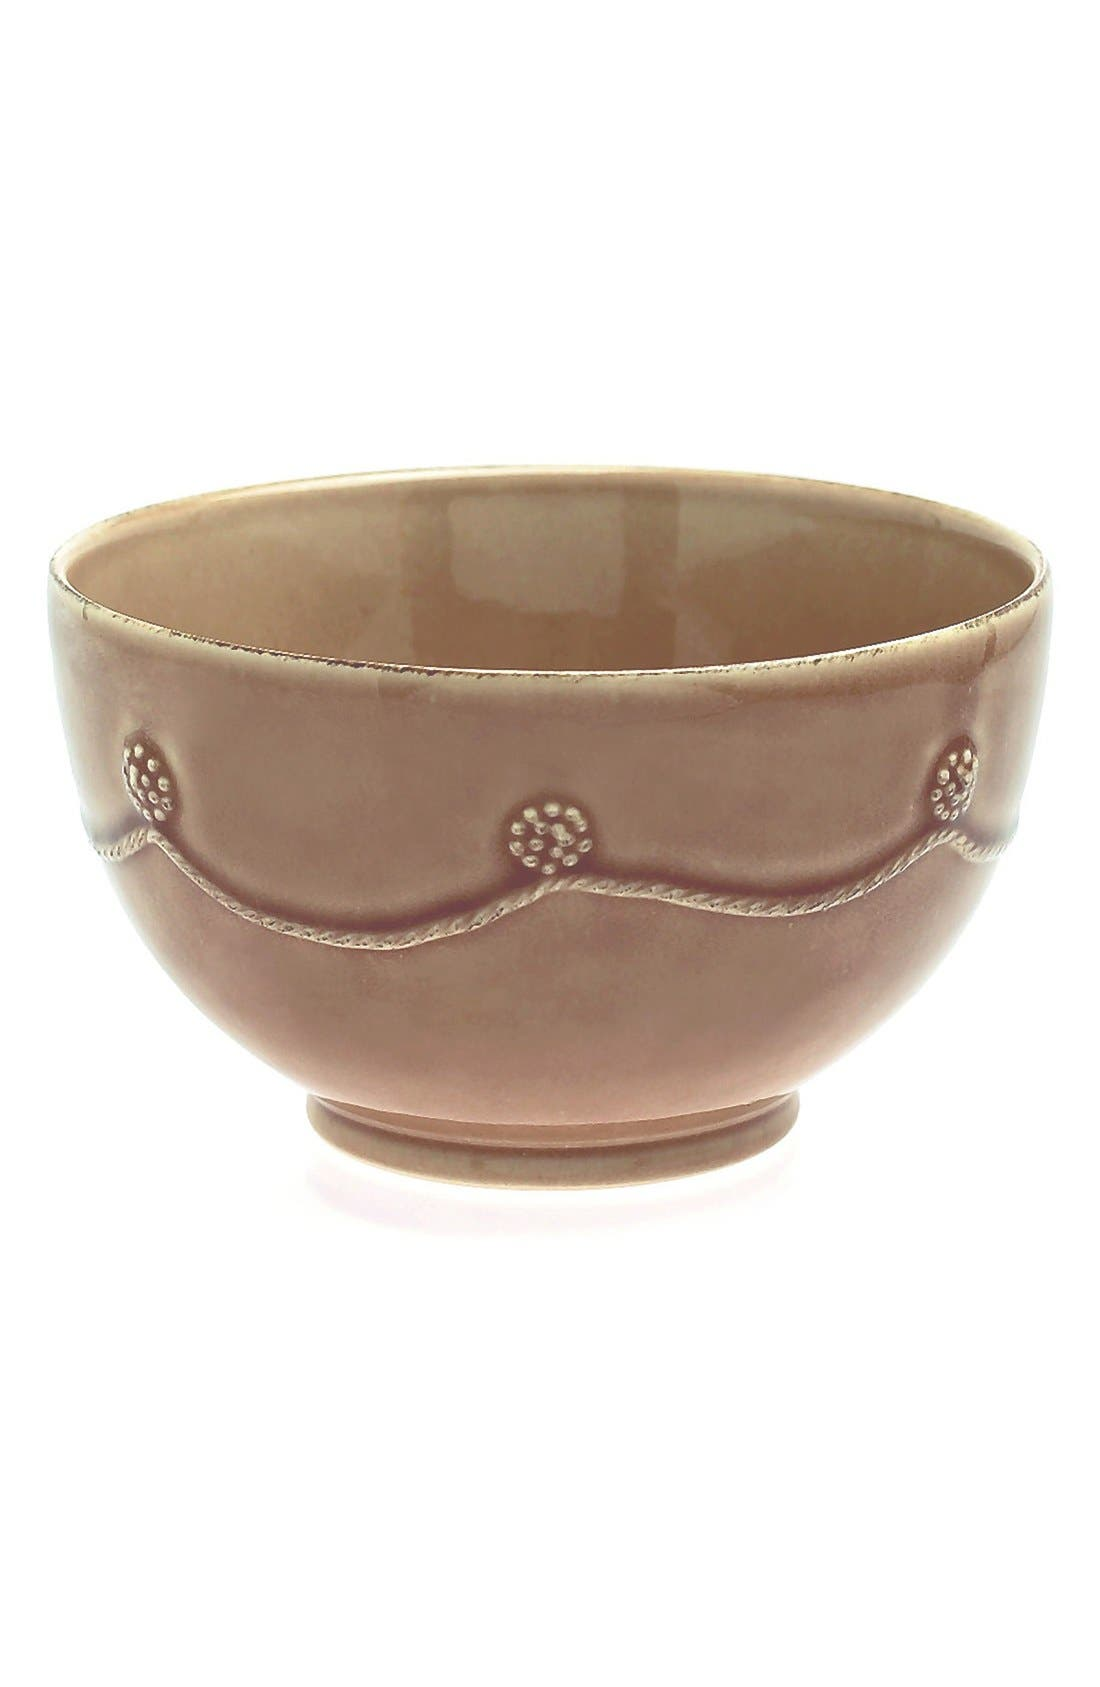 'Berry and Thread' Soup Bowl,                             Main thumbnail 1, color,                             200